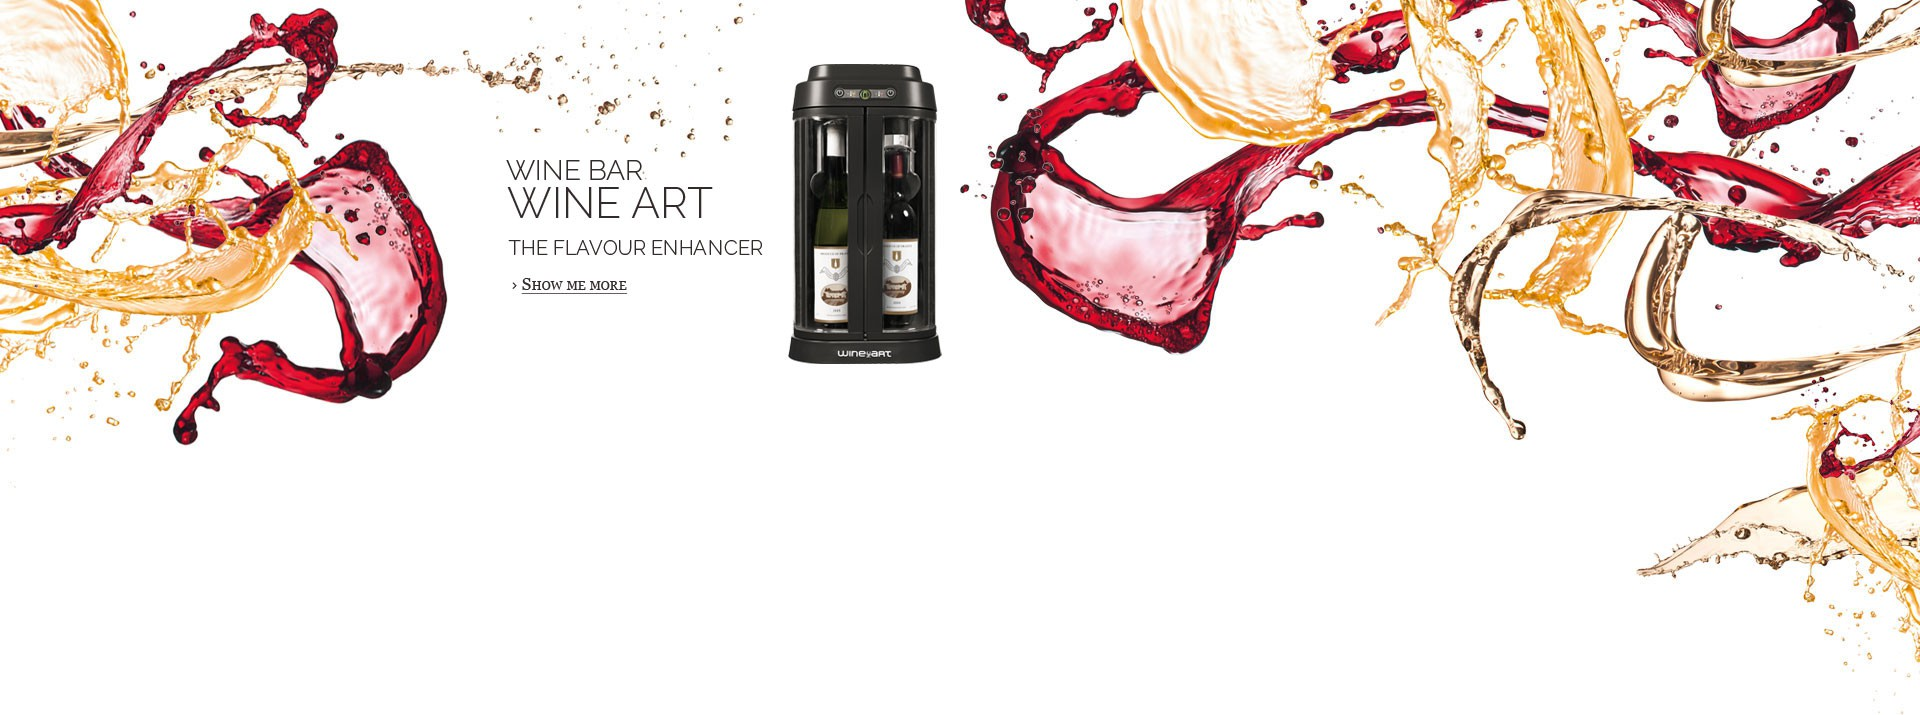 Brings your wine to the correct serving temperature & preserve flavour*